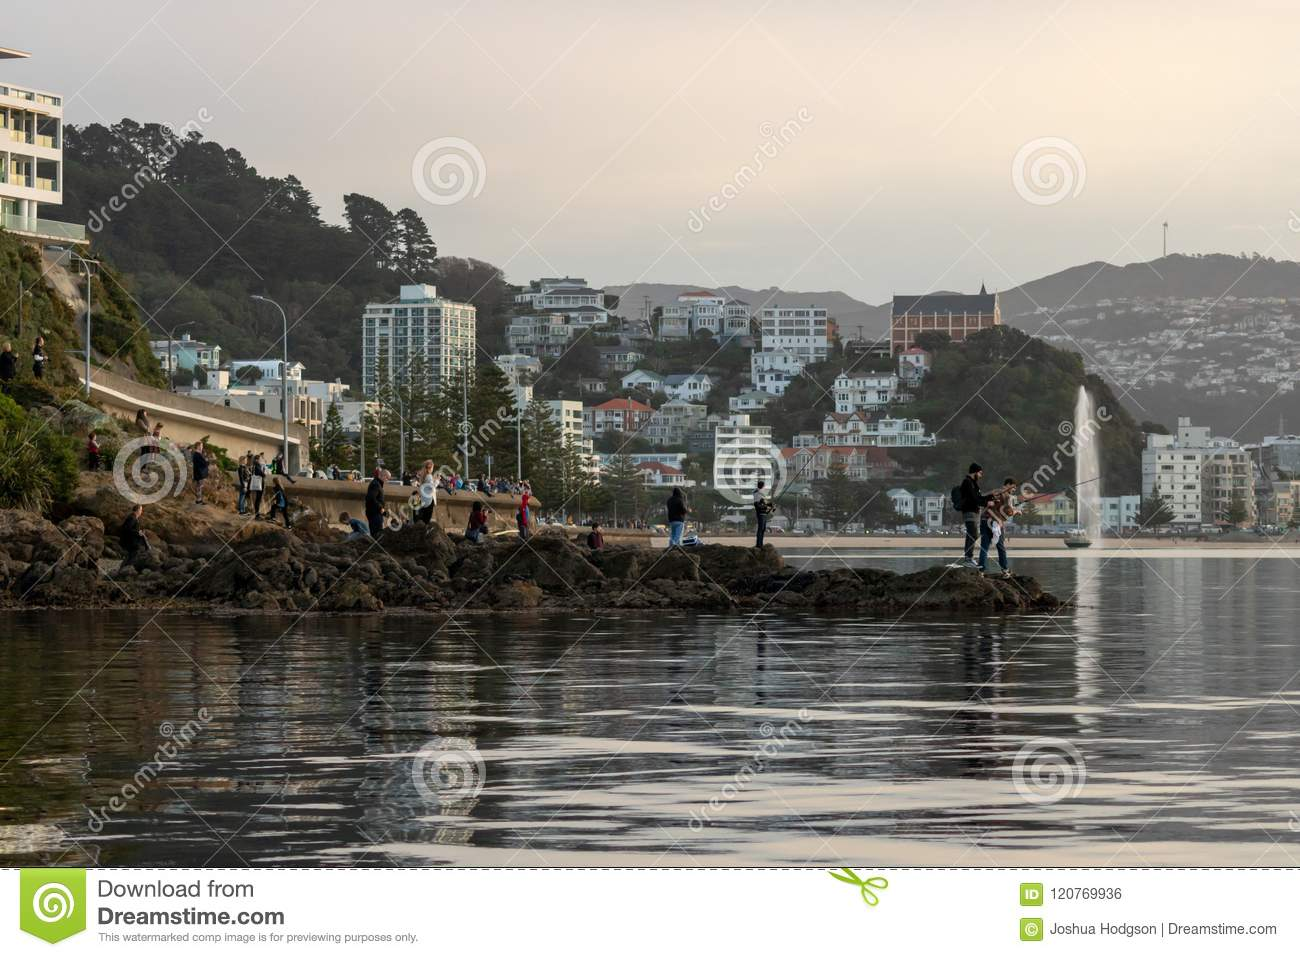 Crowds Gather At Shoreline To View Whale, Wellington New Zealand